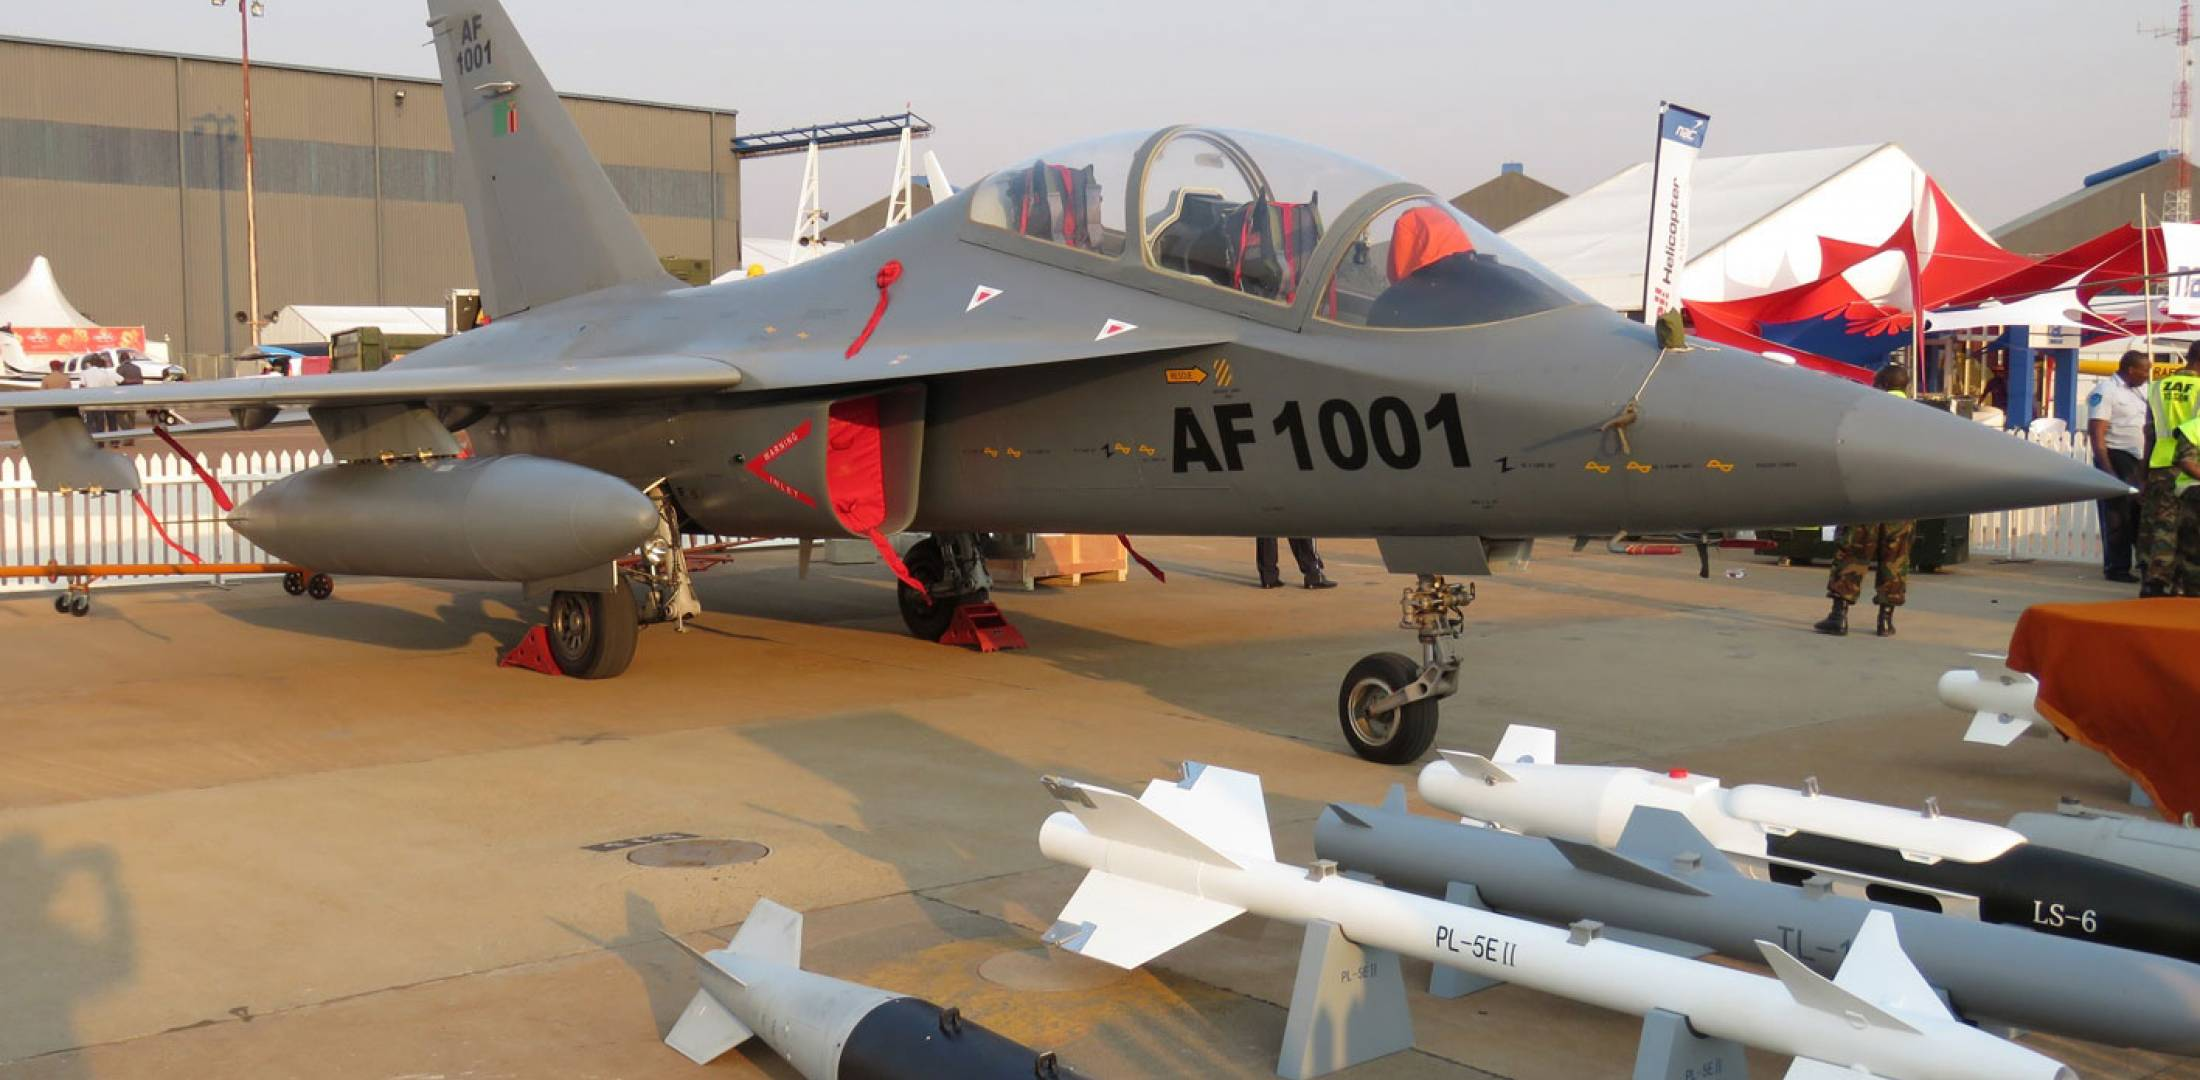 China's L-15 Jet Displayed by Zambia In South Africa | Defense News